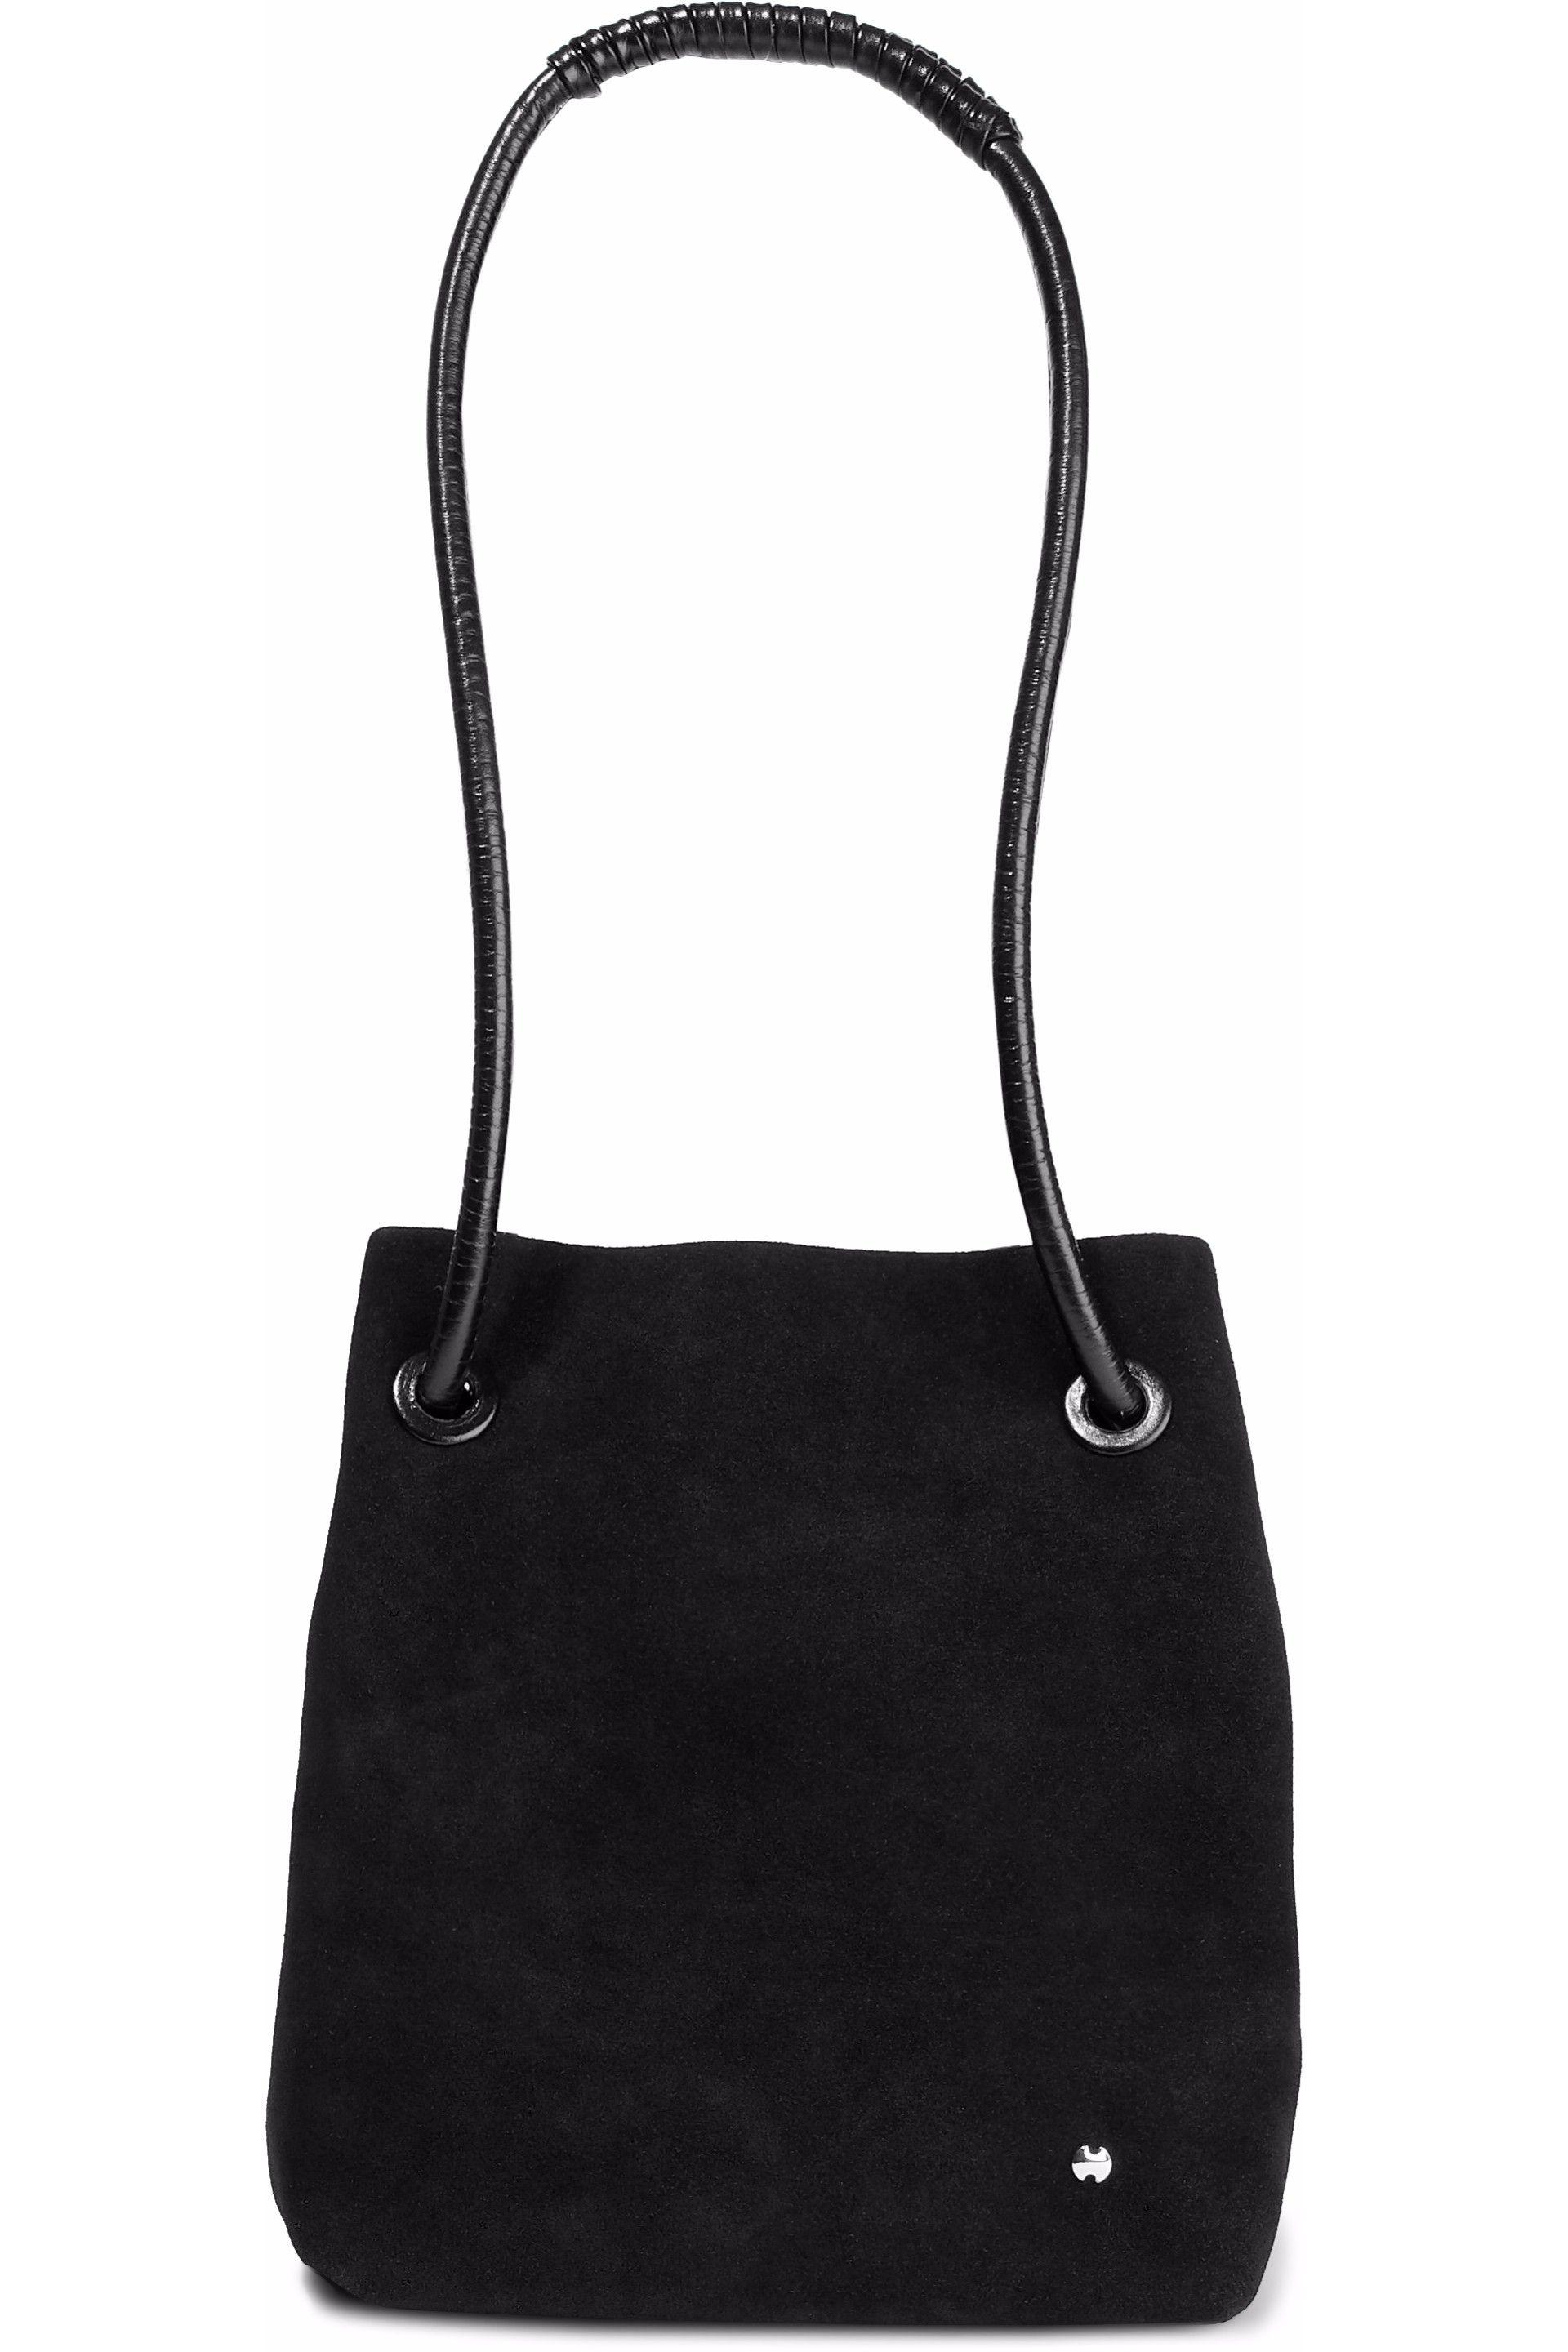 e7b1ffffa9 Halston Woman Alism Suede Bucket Bag Black in Black - Lyst